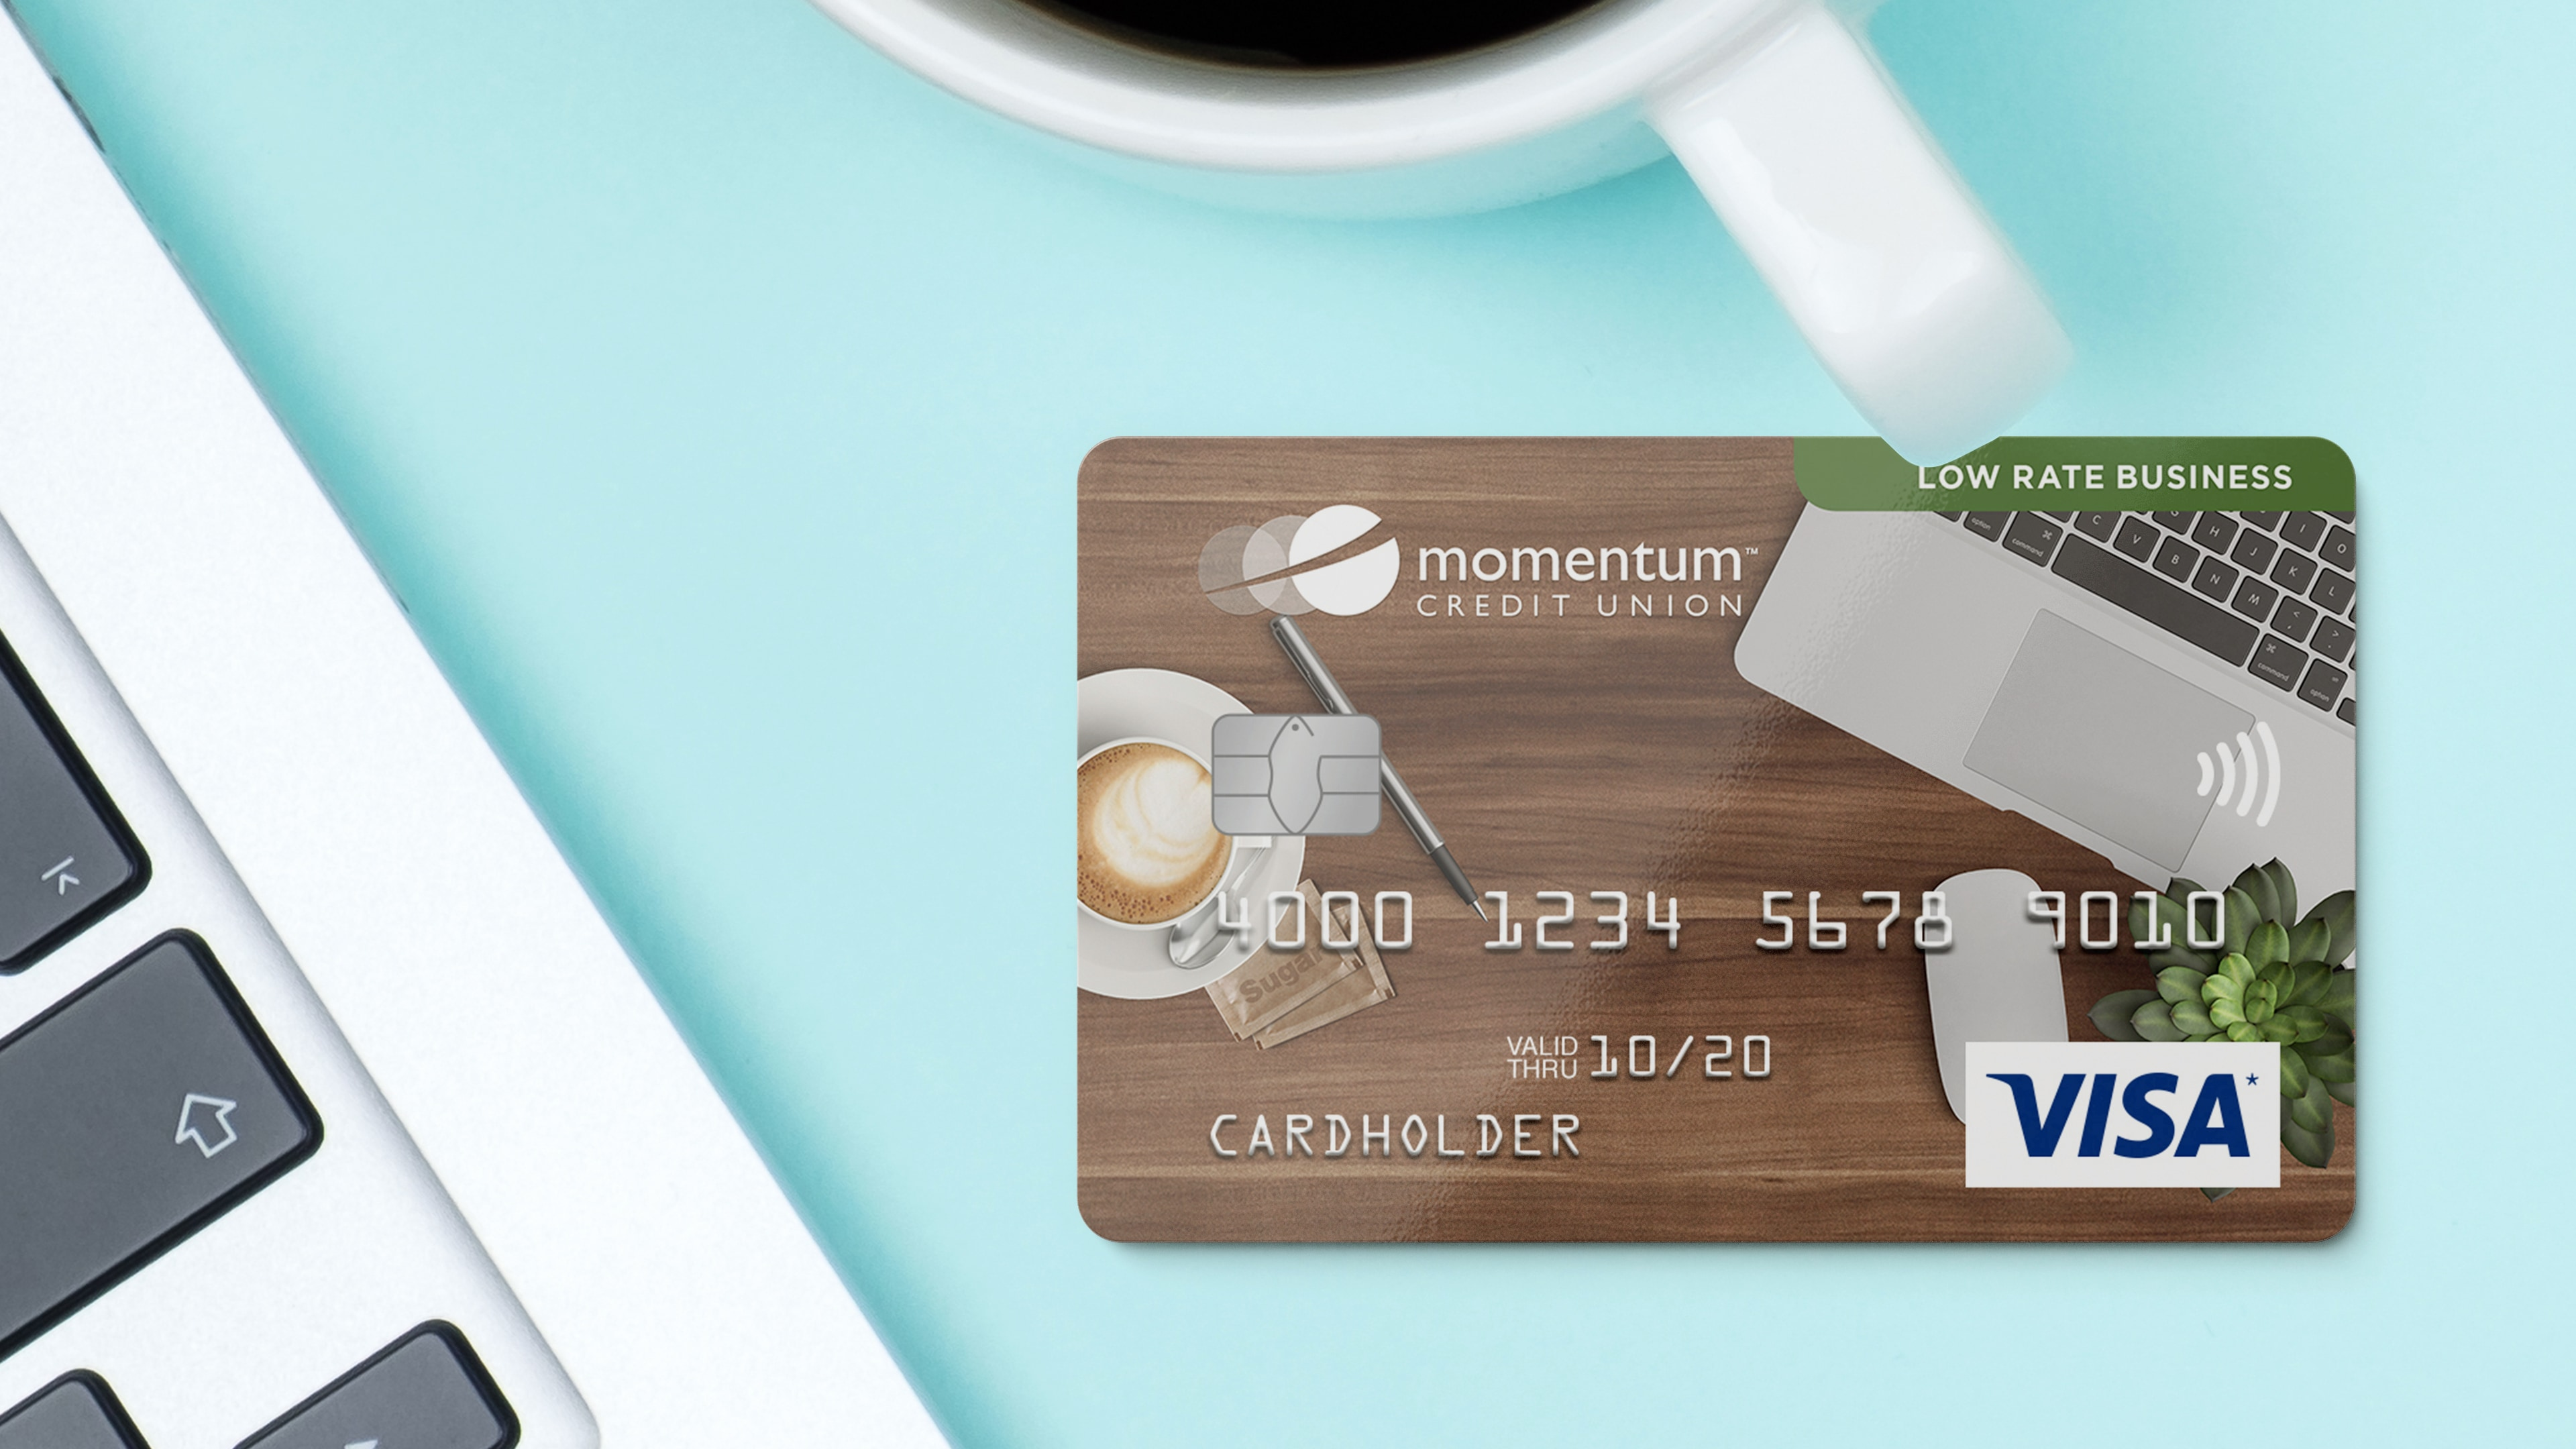 Momentum Visa Low Rate Business